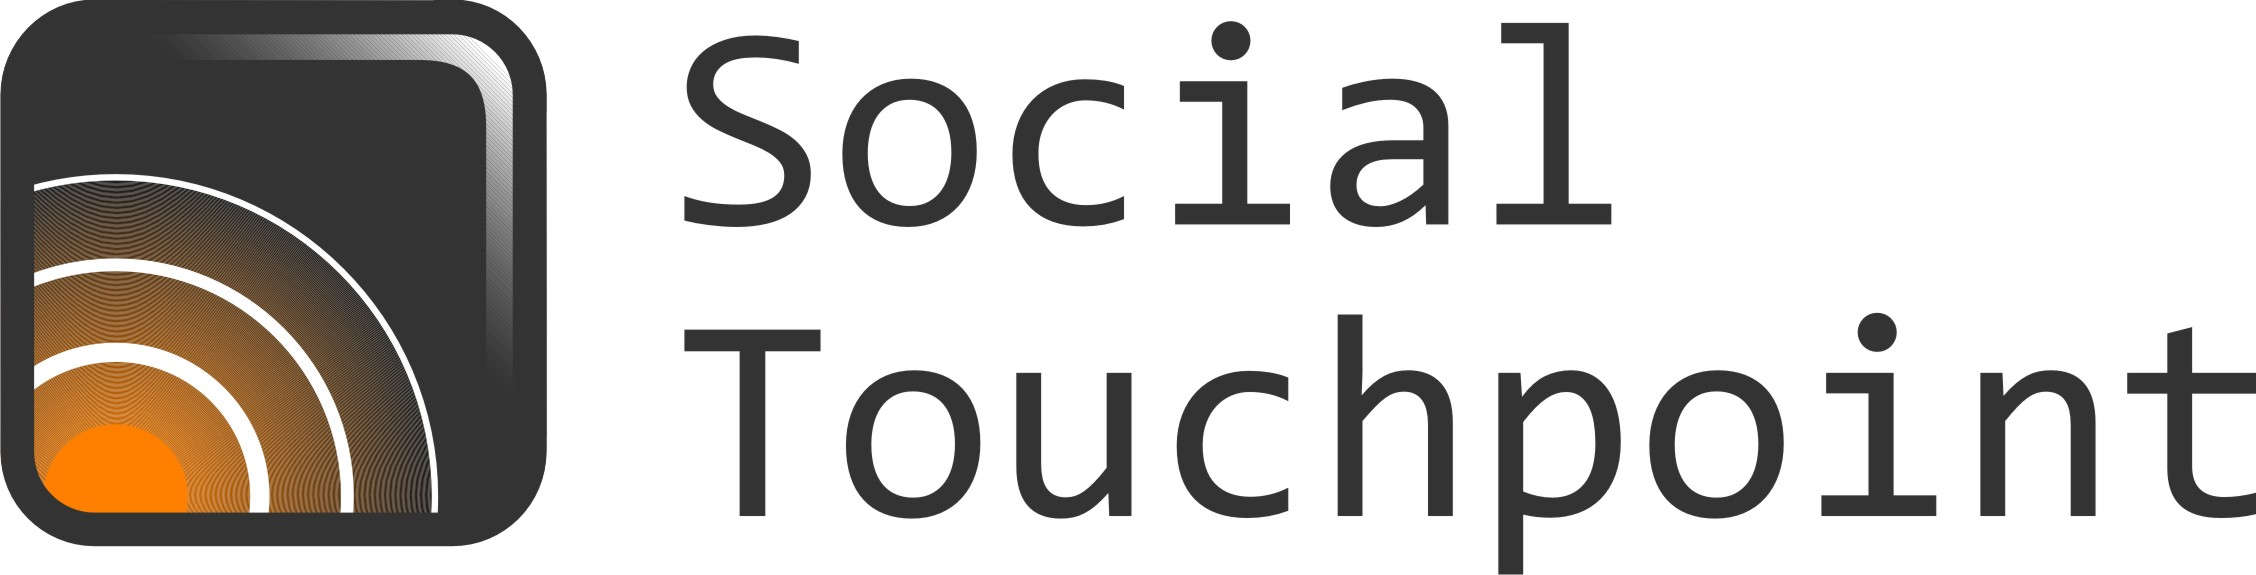 Social Touchpoint GmbH